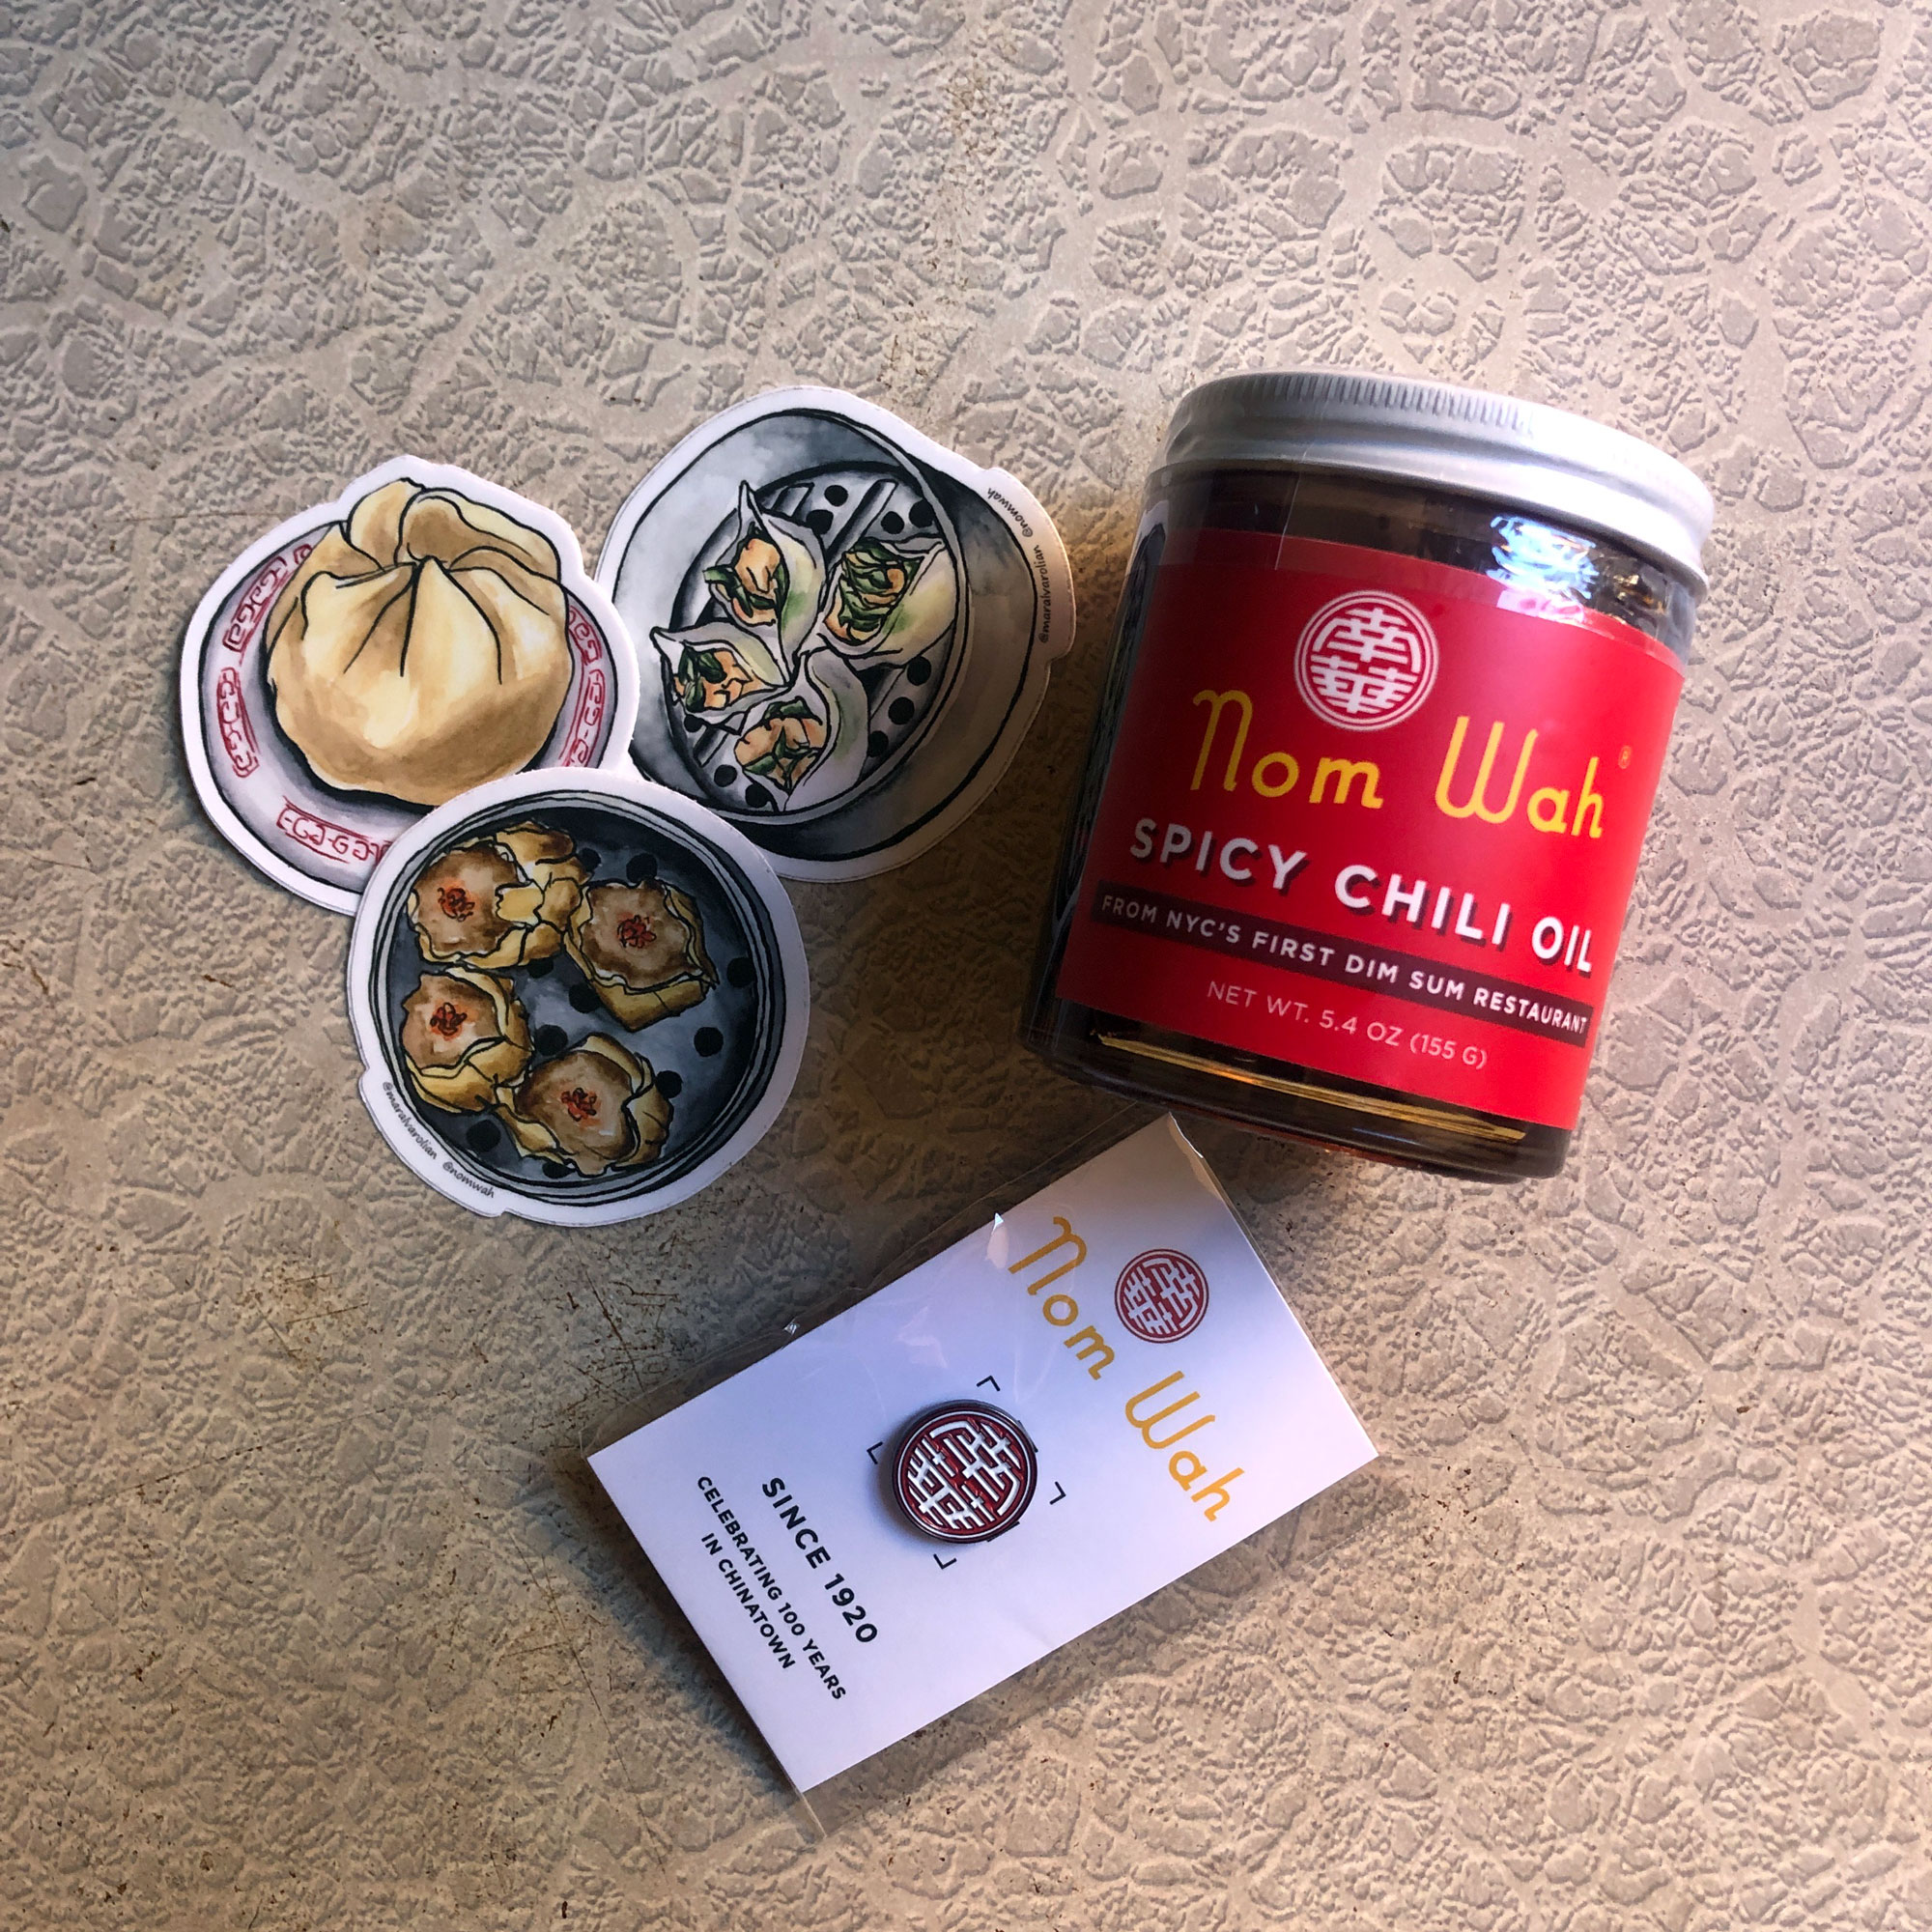 Chili oil swag pack